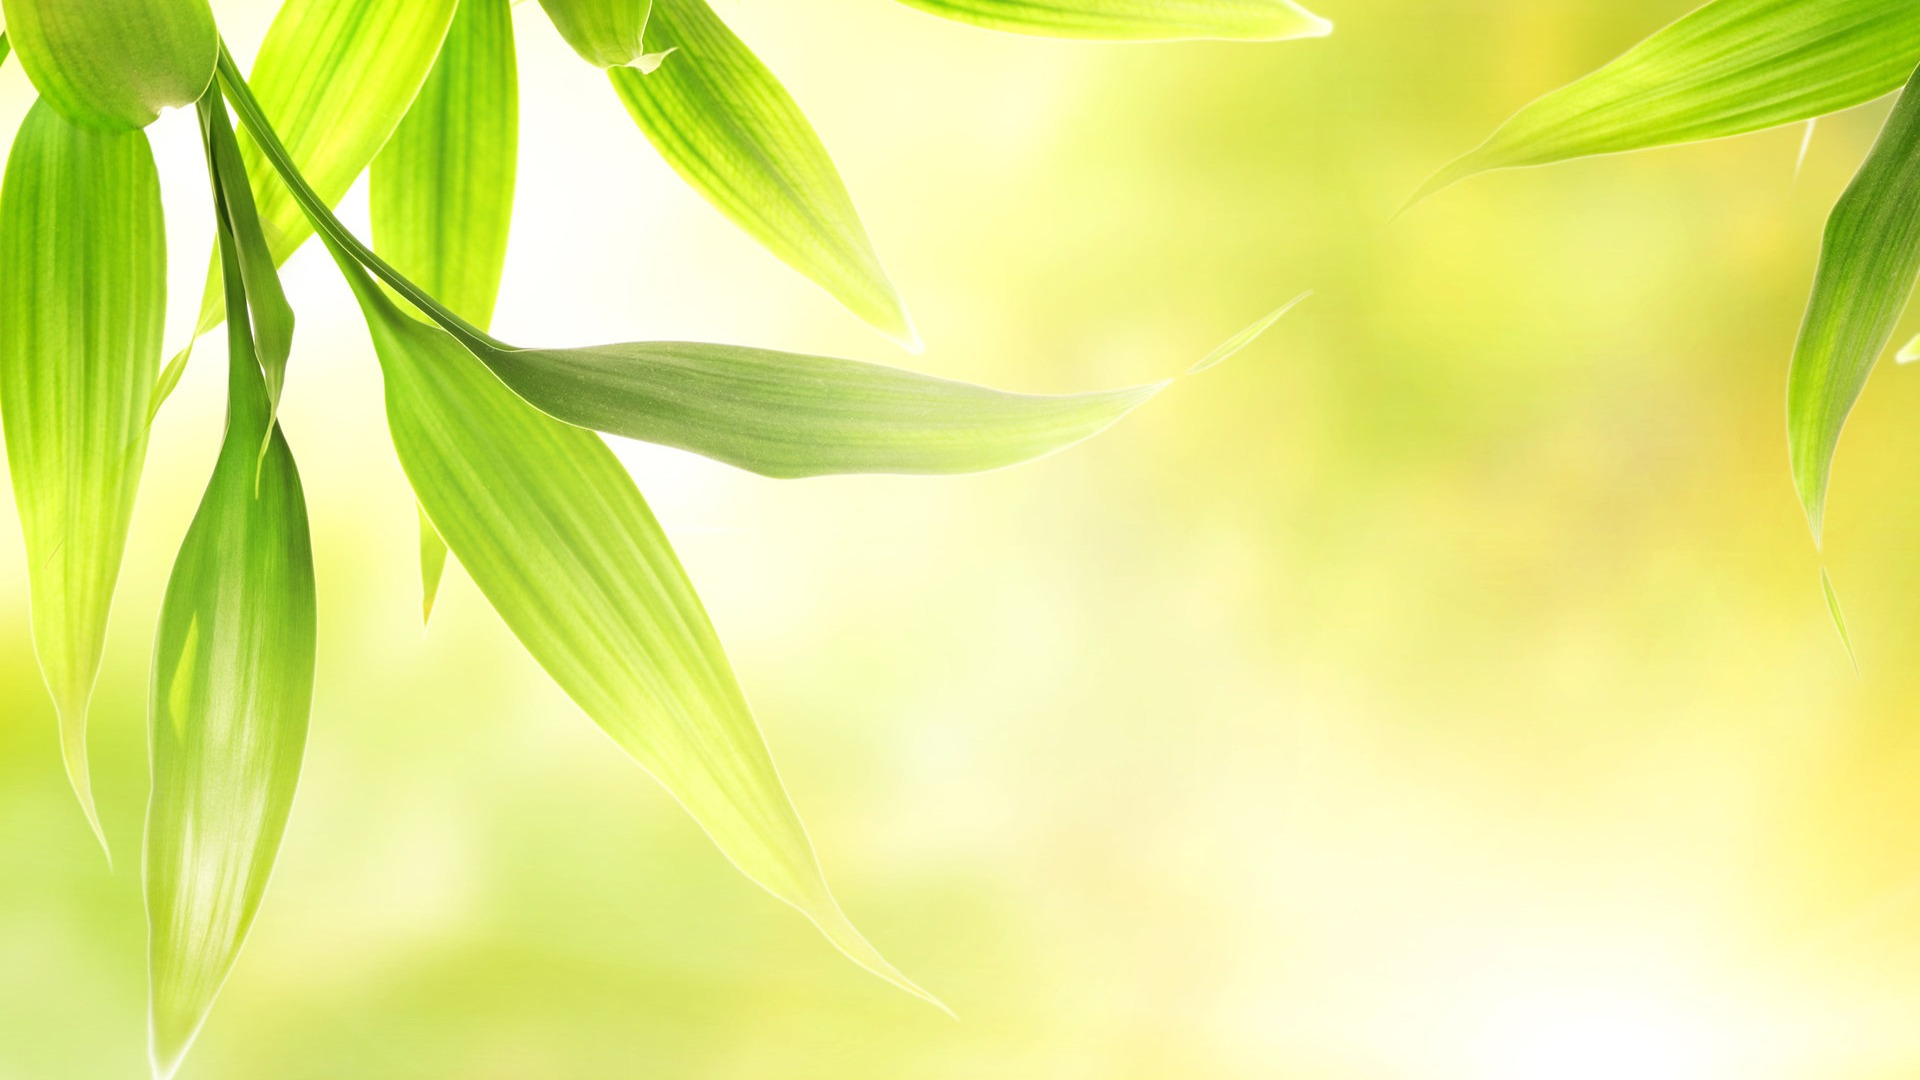 Fresh Green Soft Leaves Preview